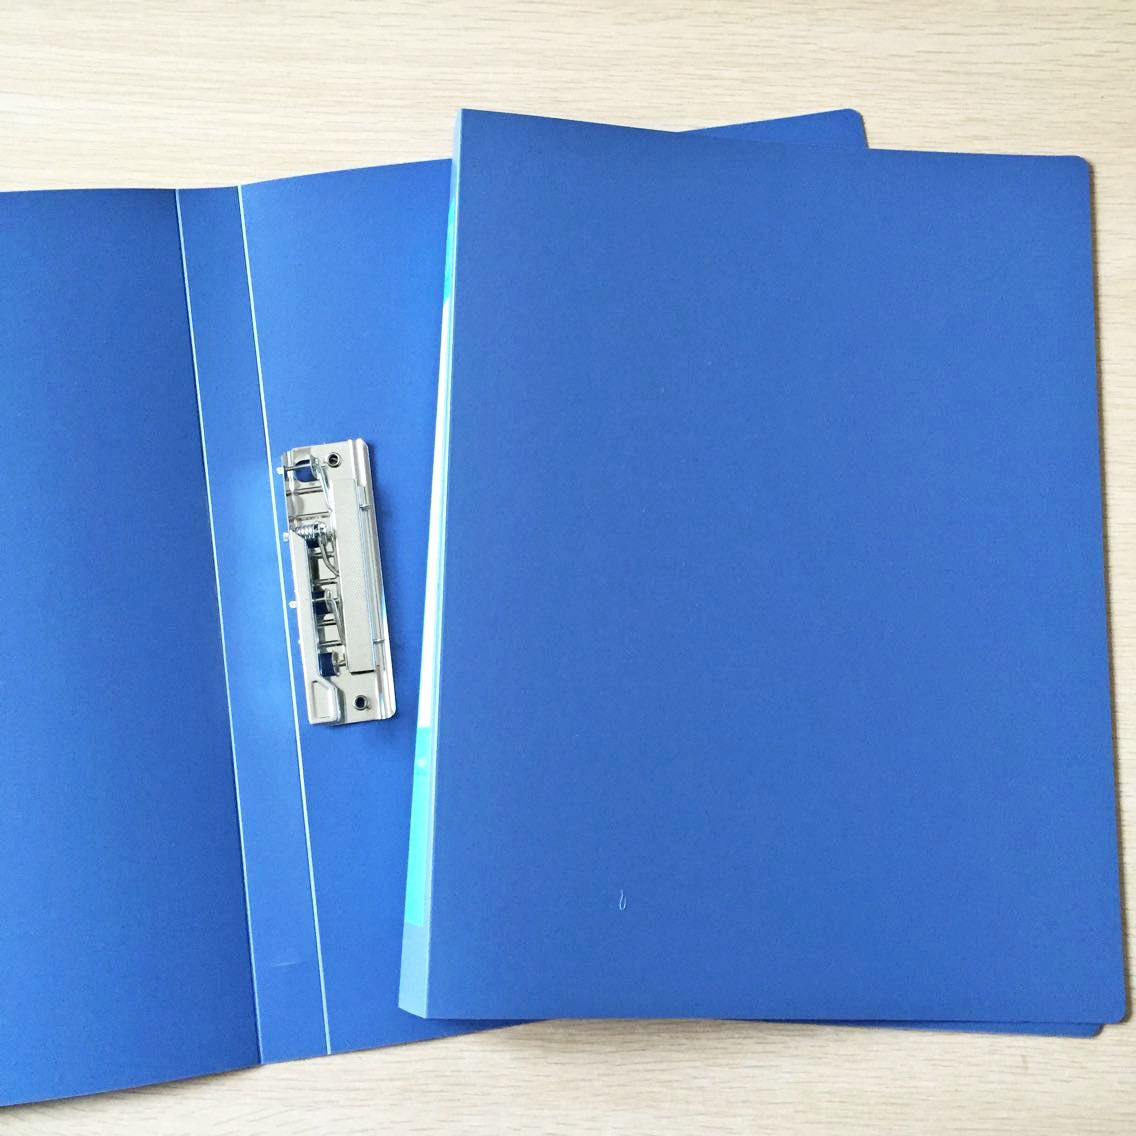 High-Quality Plastic Folder for Stationery Supplies